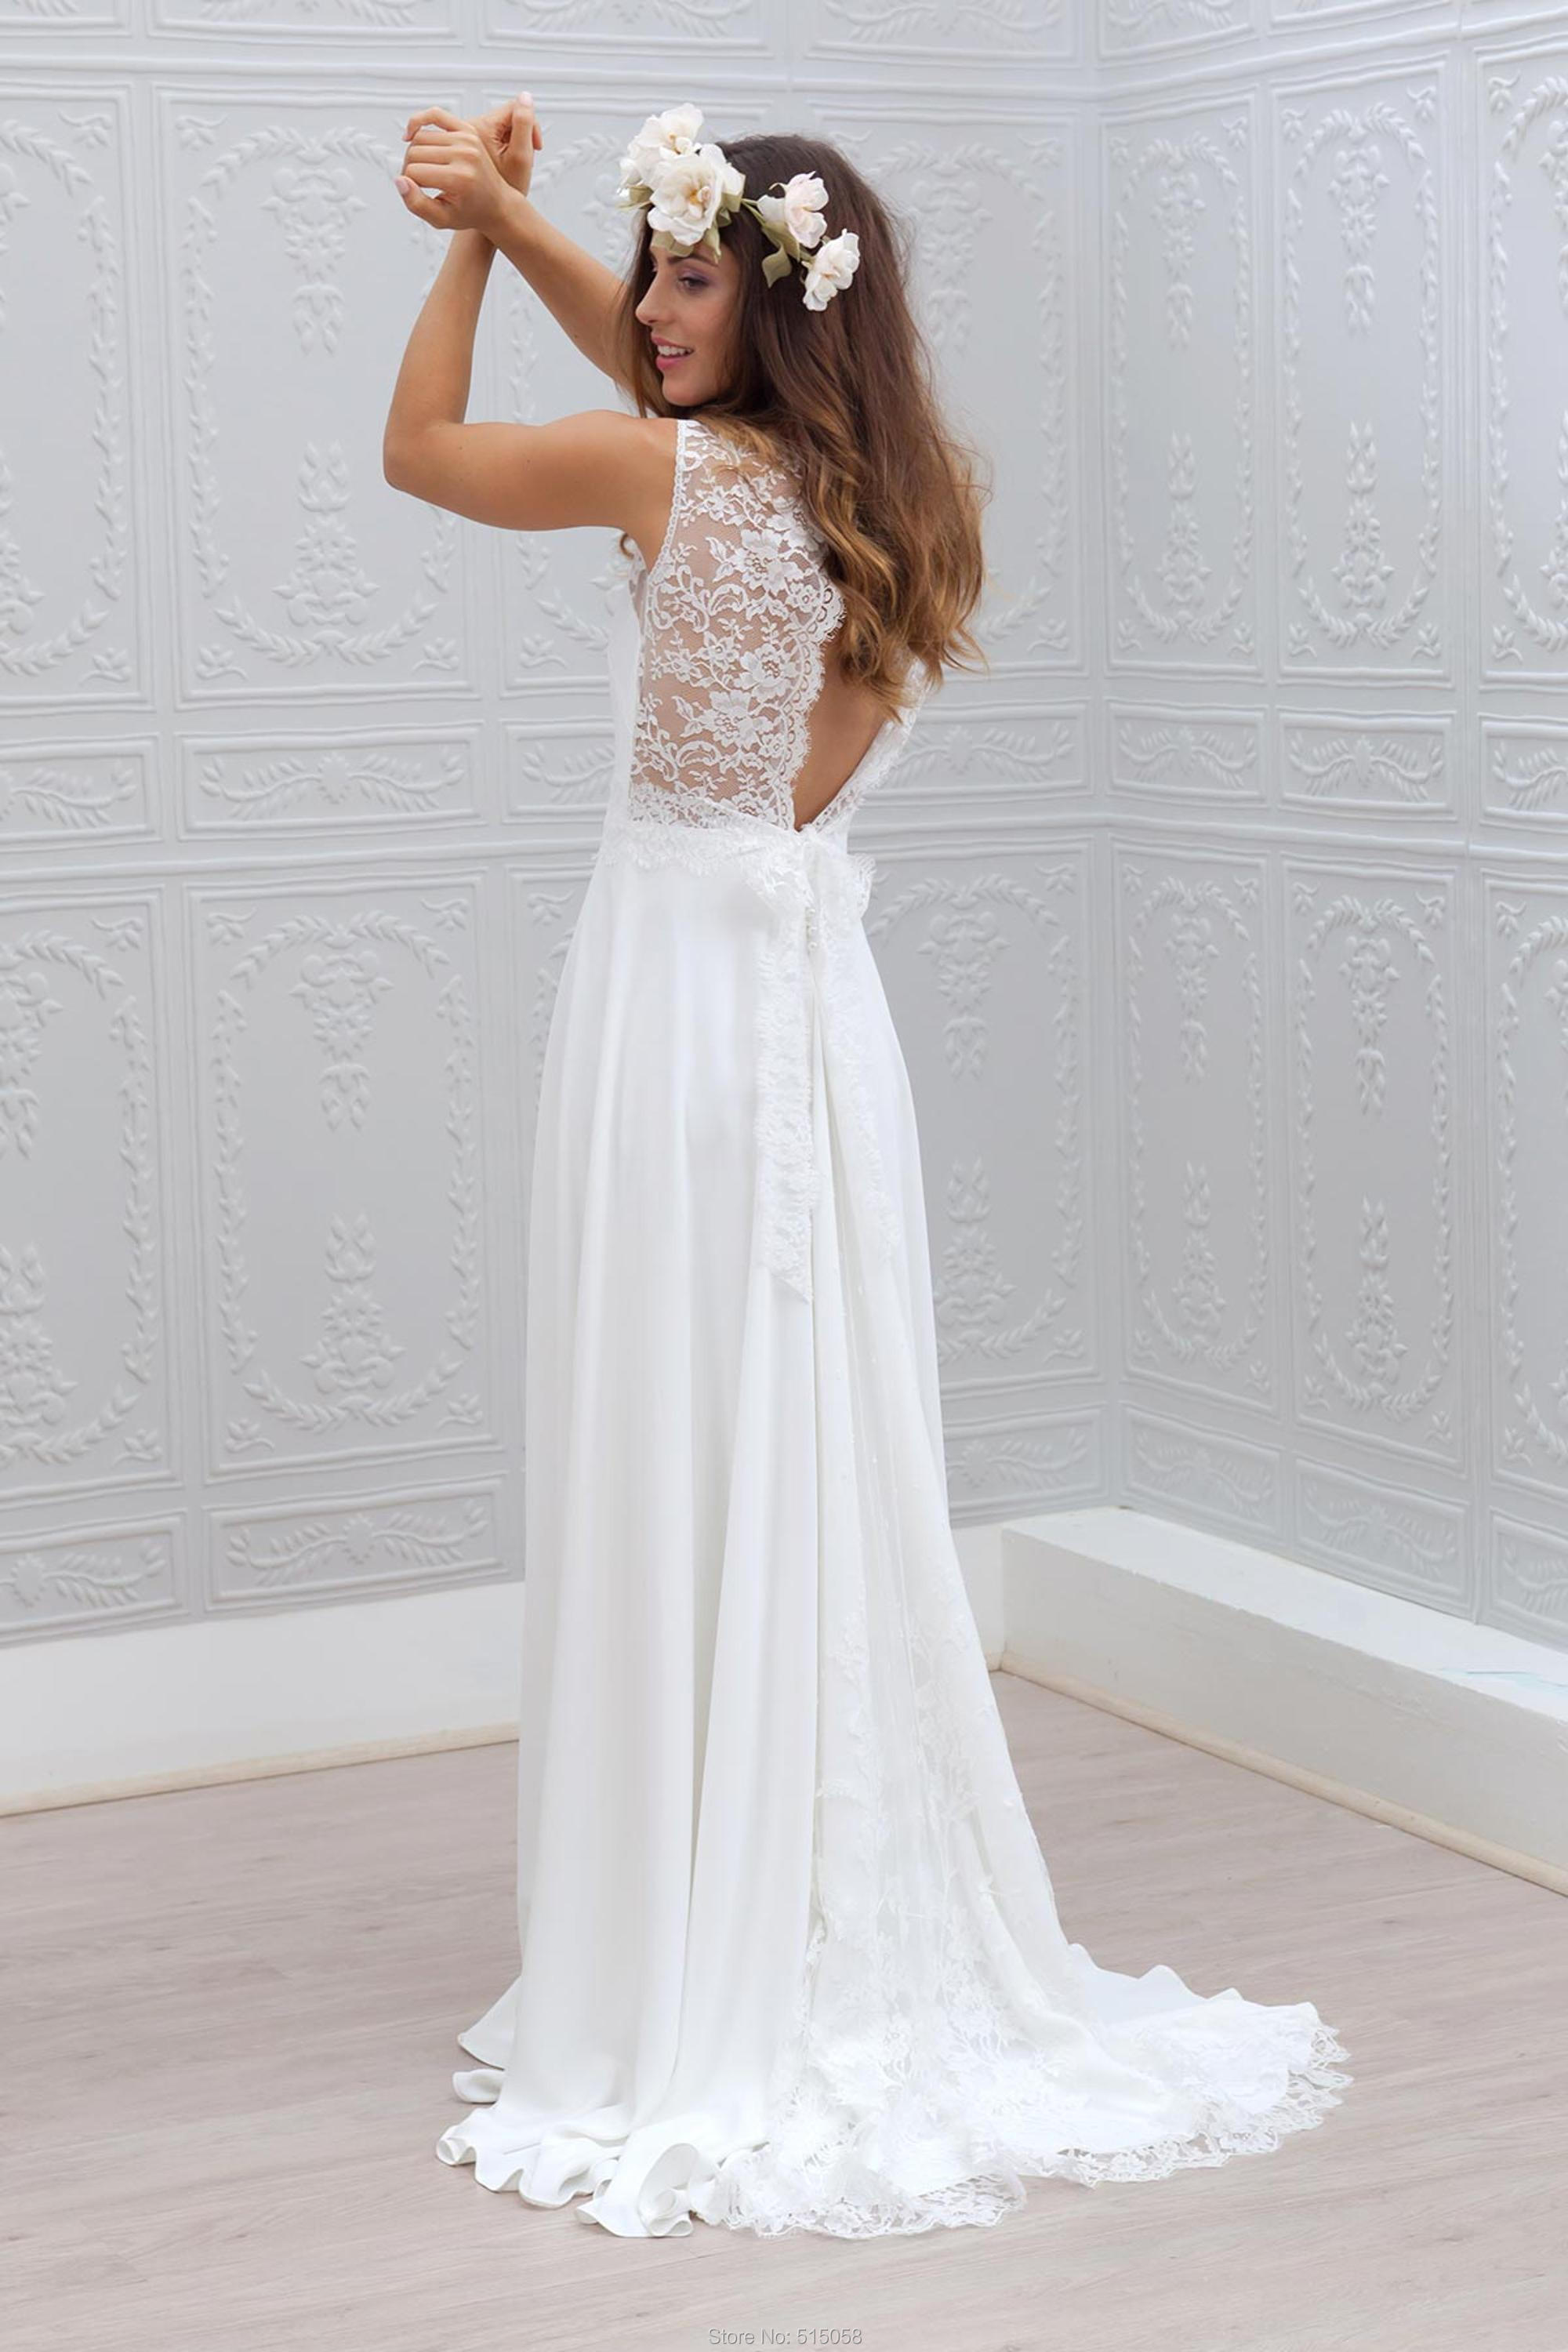 Rustic wedding dresses 2017 sexy backless long lace for Aliexpress wedding dresses 2017